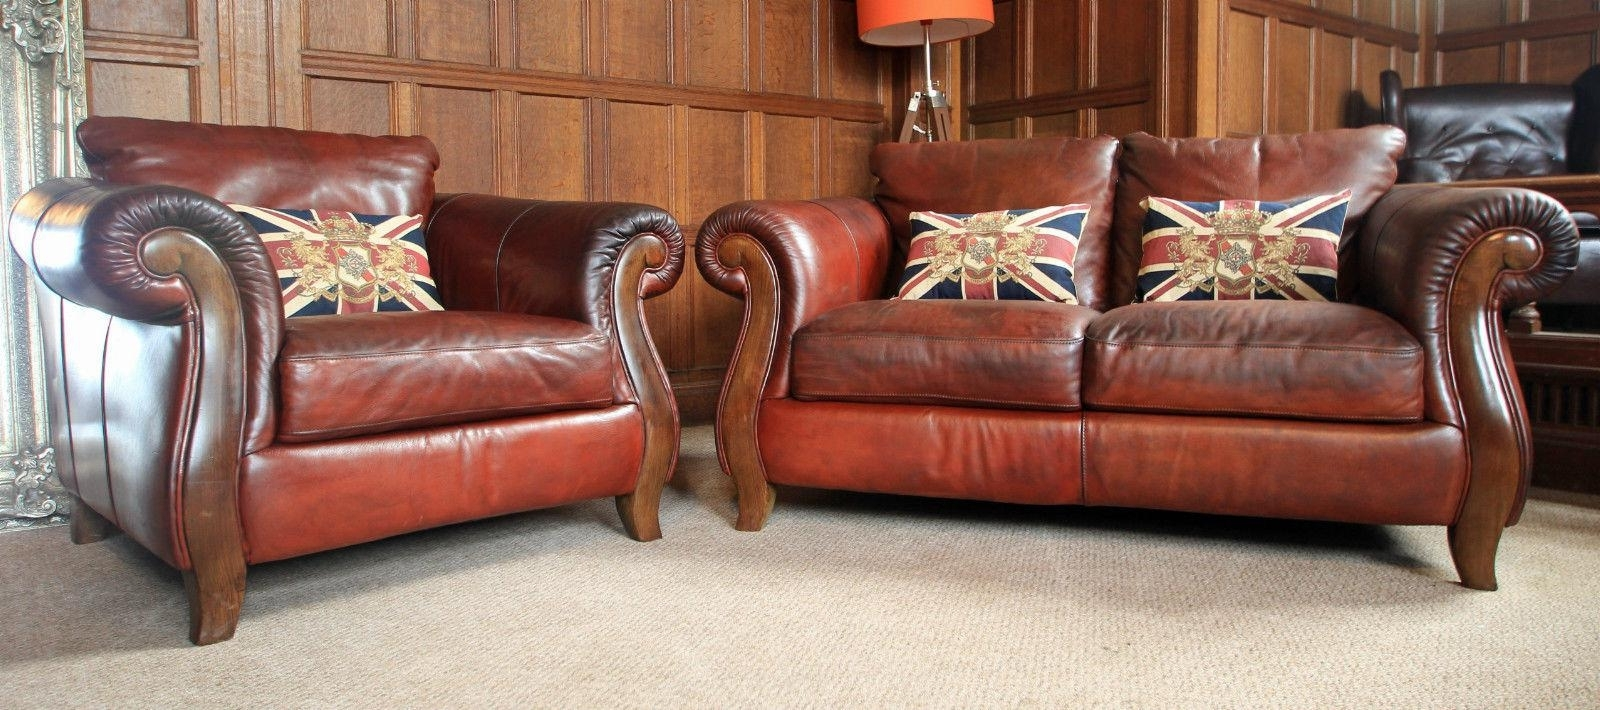 Living Room : Victorian Leather Sofa Cream Leather Sofa Victorian Pertaining To Fashionable Victorian Leather Sofas (View 7 of 20)